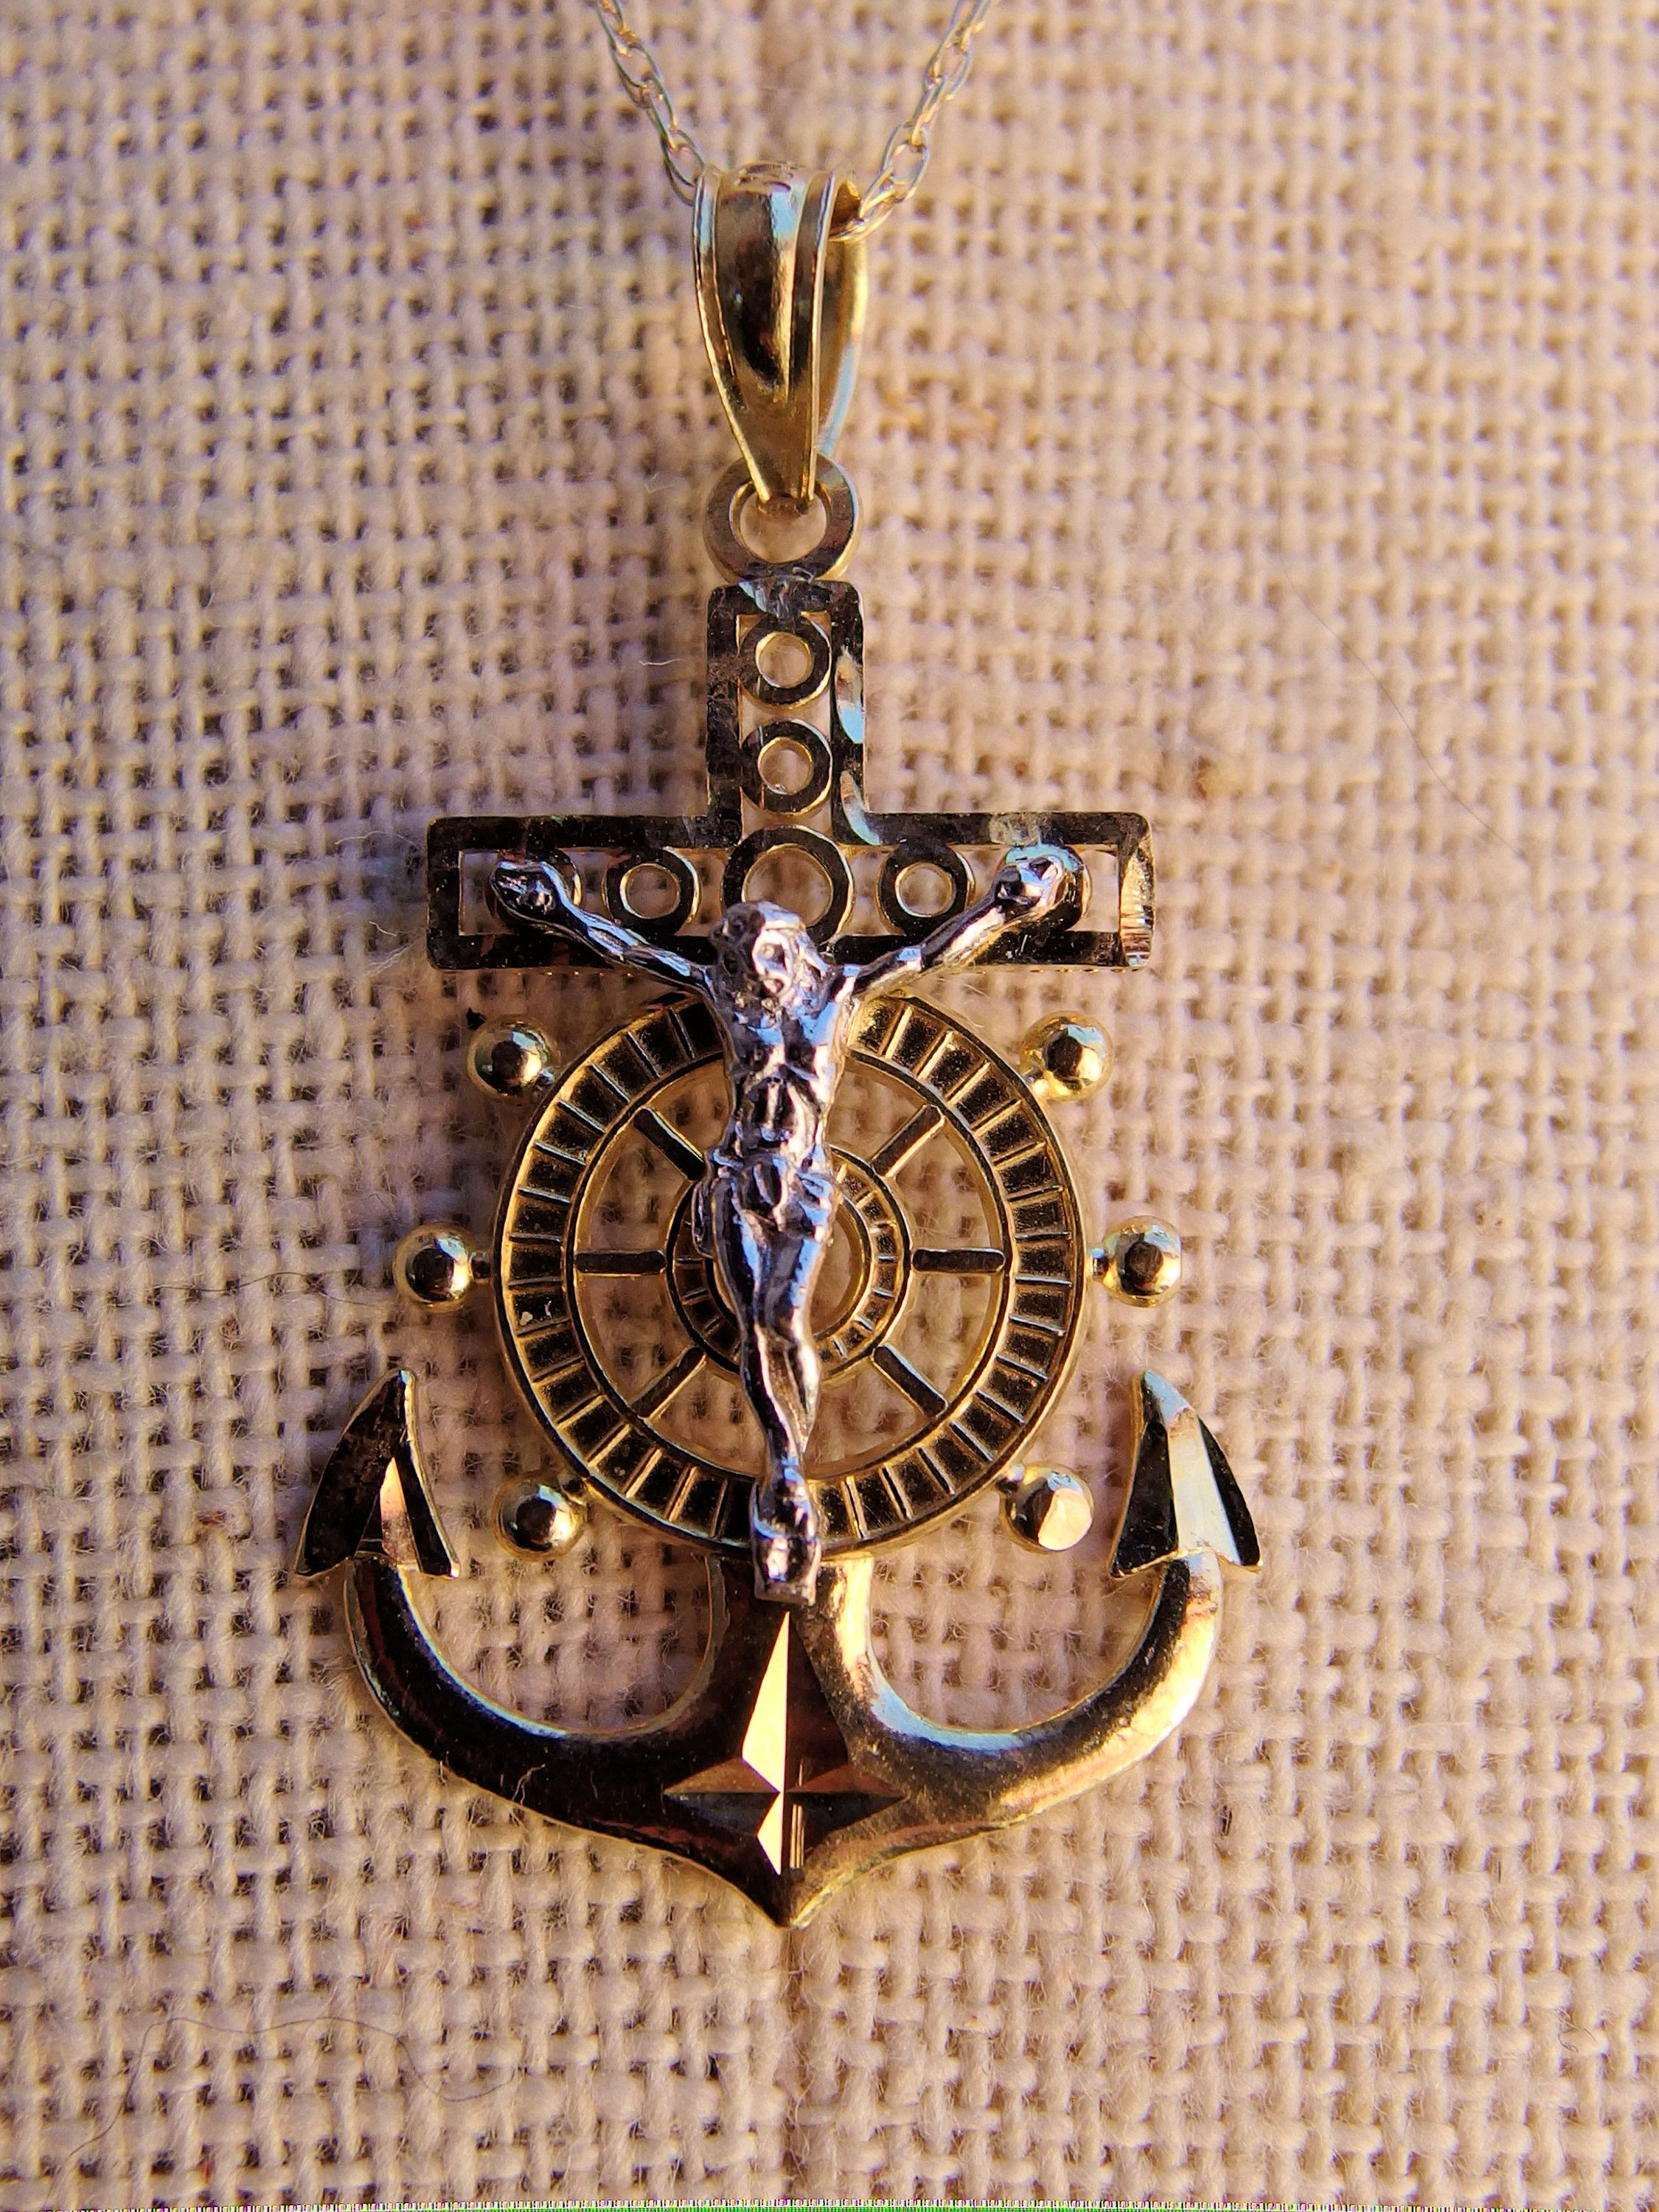 c55e1ac88c430 14k Mariner's Cross or Hope Cross Pendant, Crucifix with Ship's ...